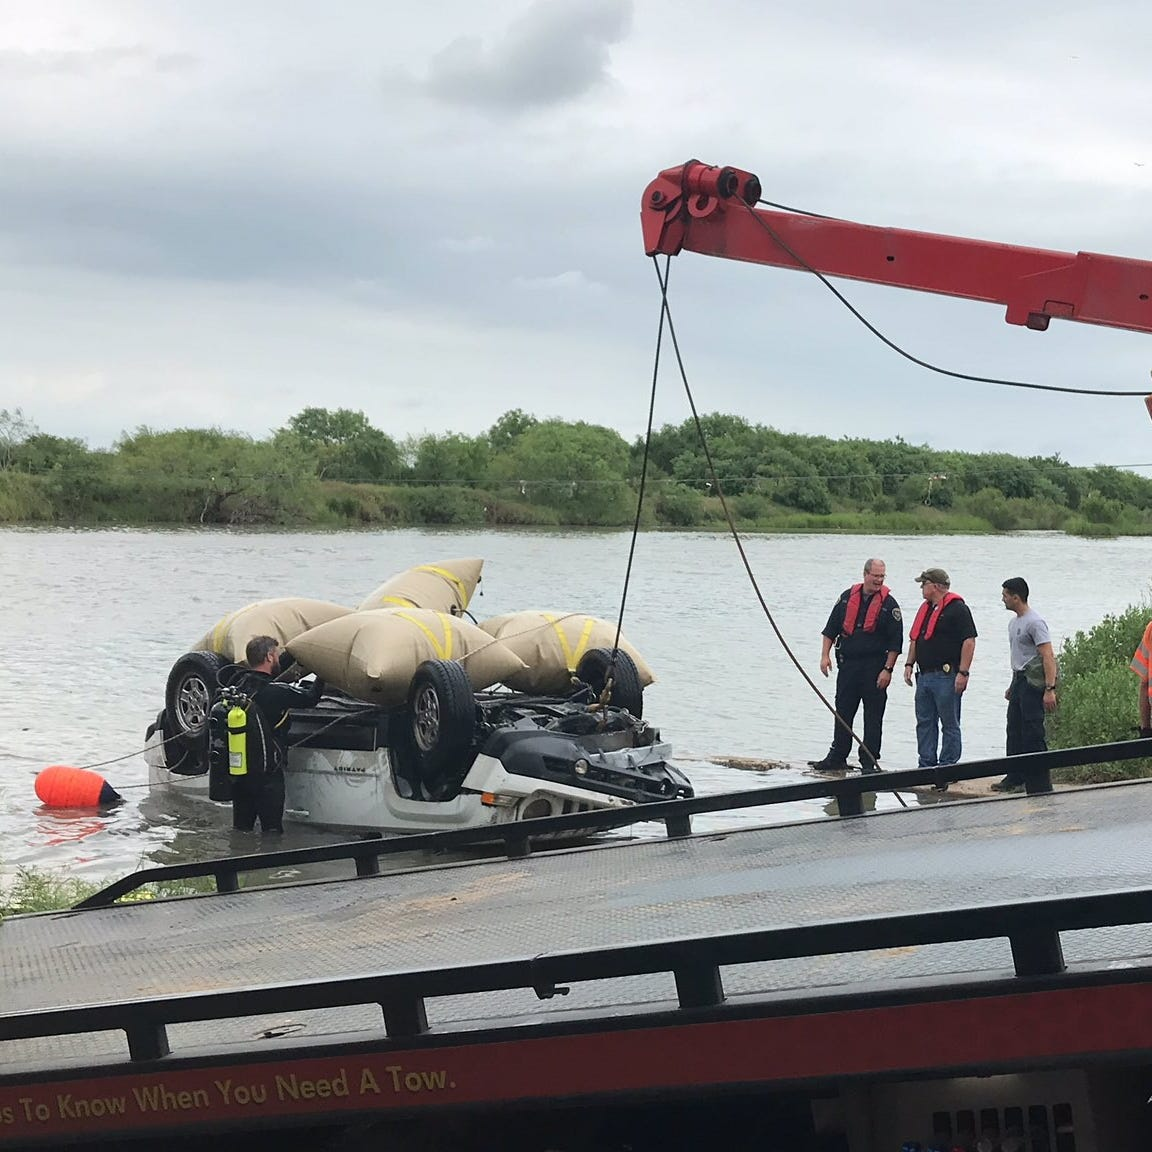 UPDATE: Man's body found by Corpus Christi police in vehicle that crashed into river